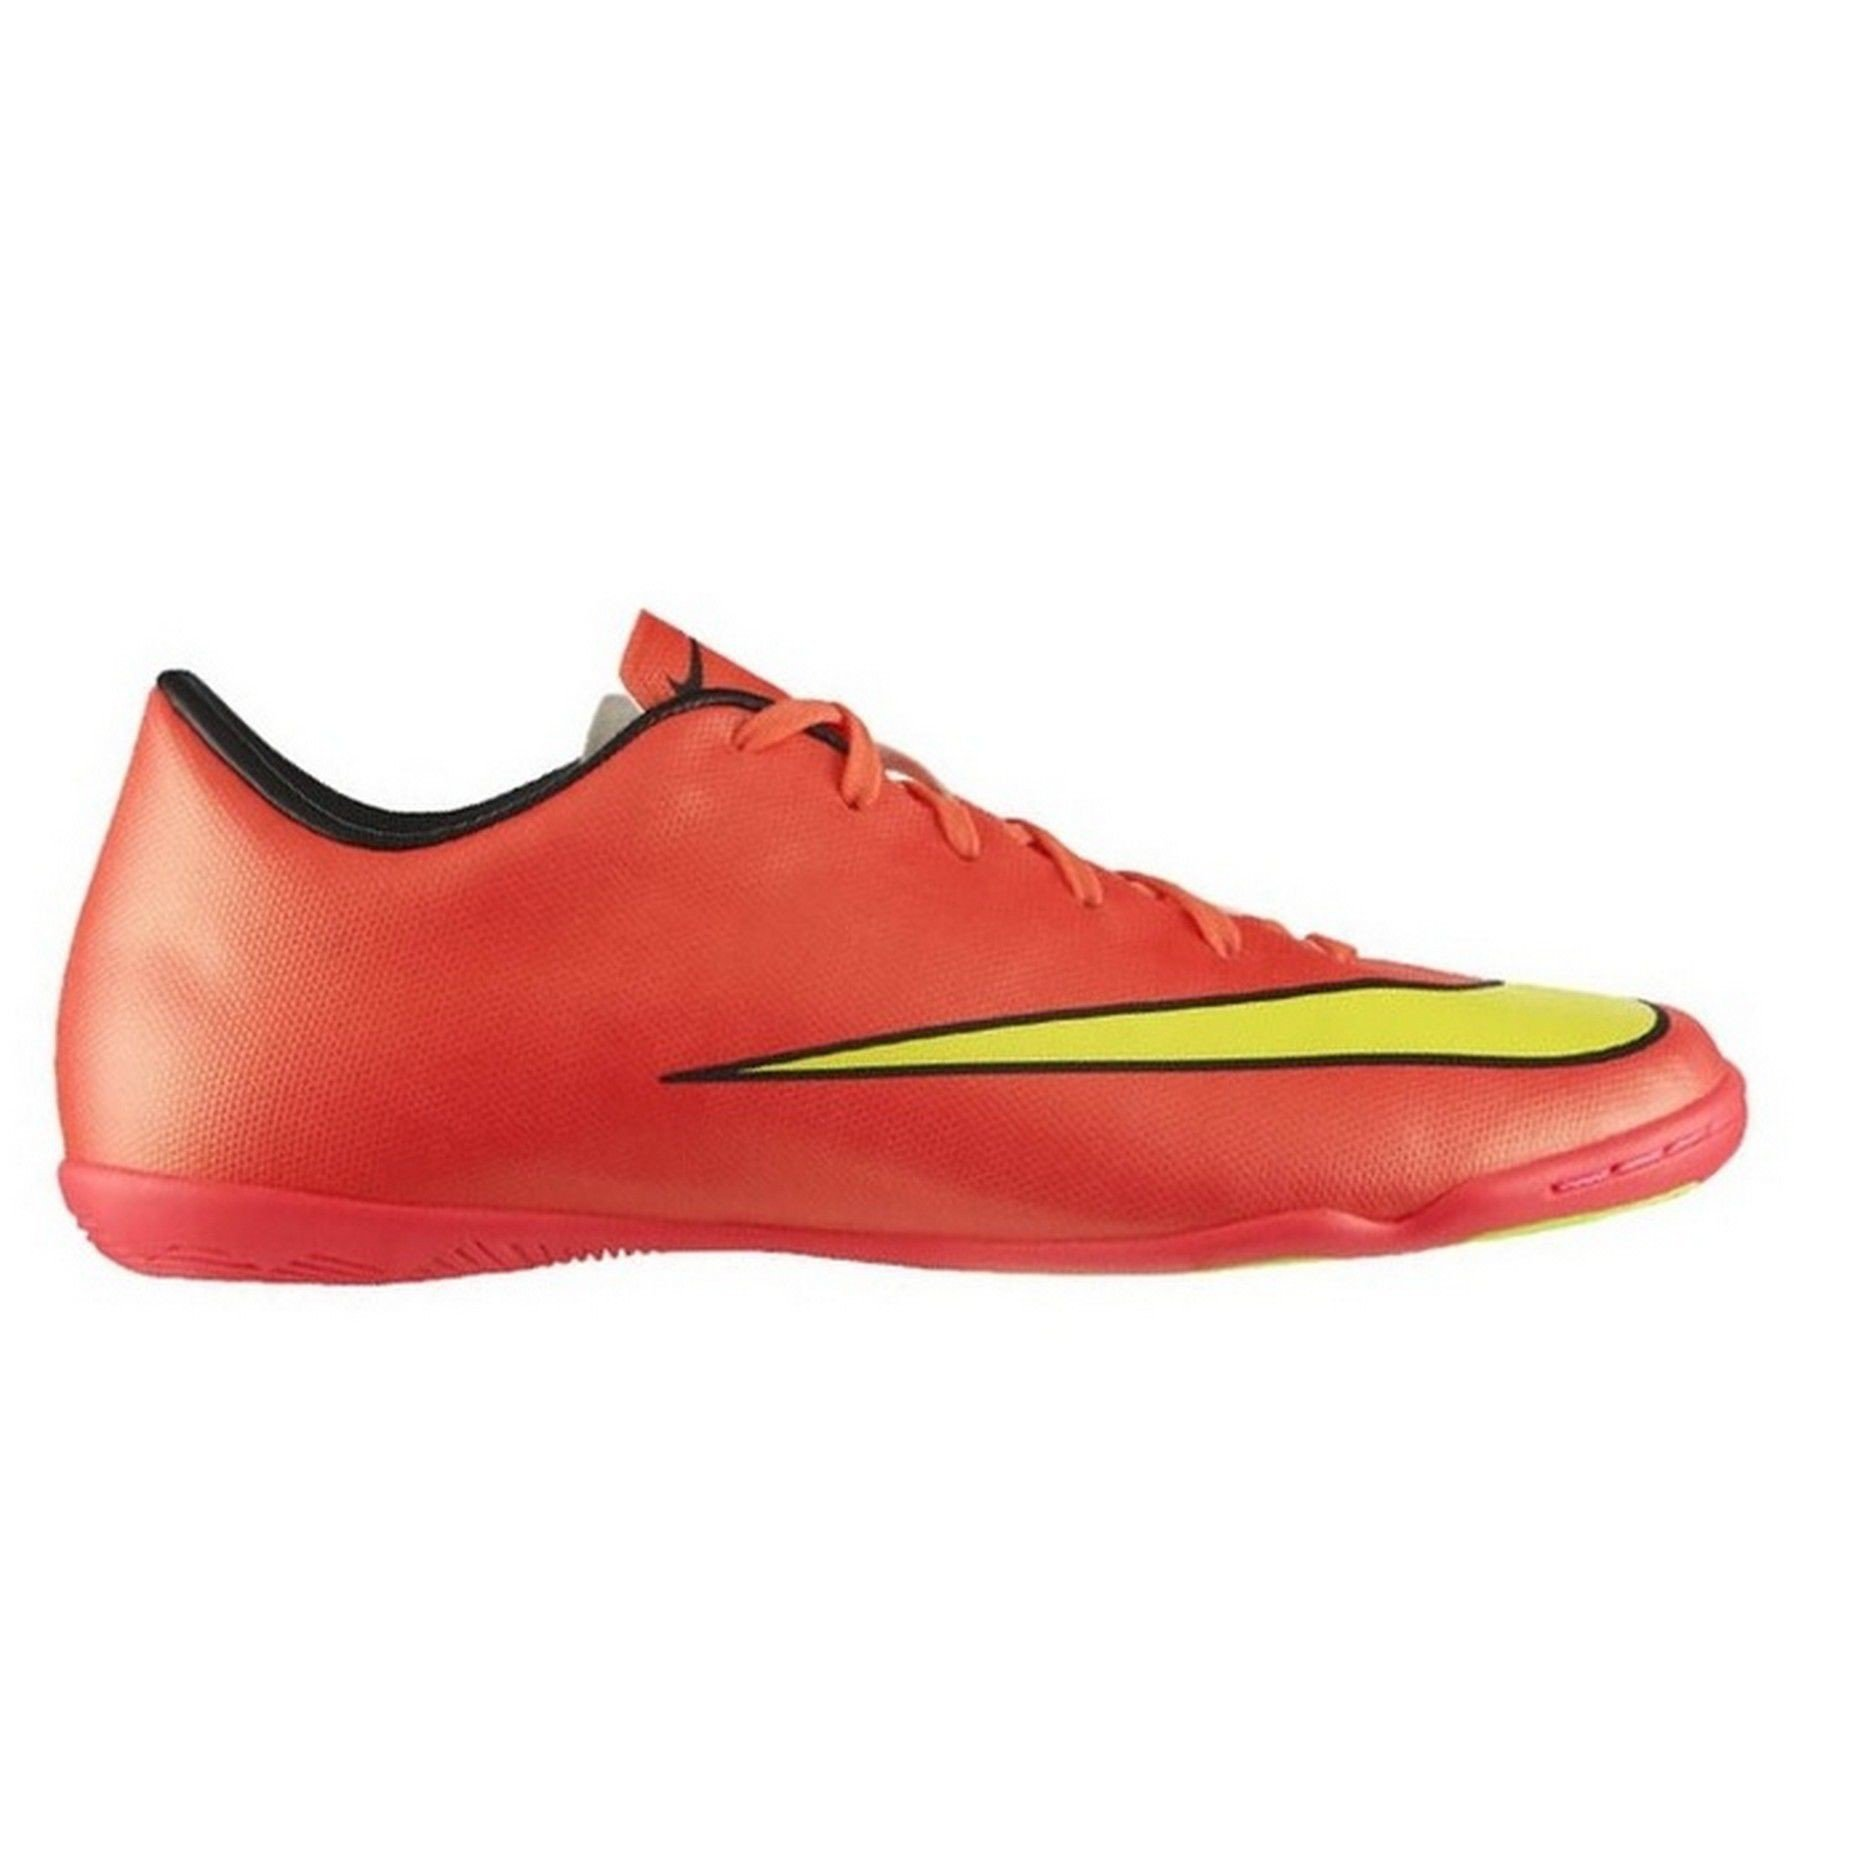 reputable site 649fc d0046 ... sweden buty halowe nike mercurial victory v ic 651635 690 81ef1 44128  ...